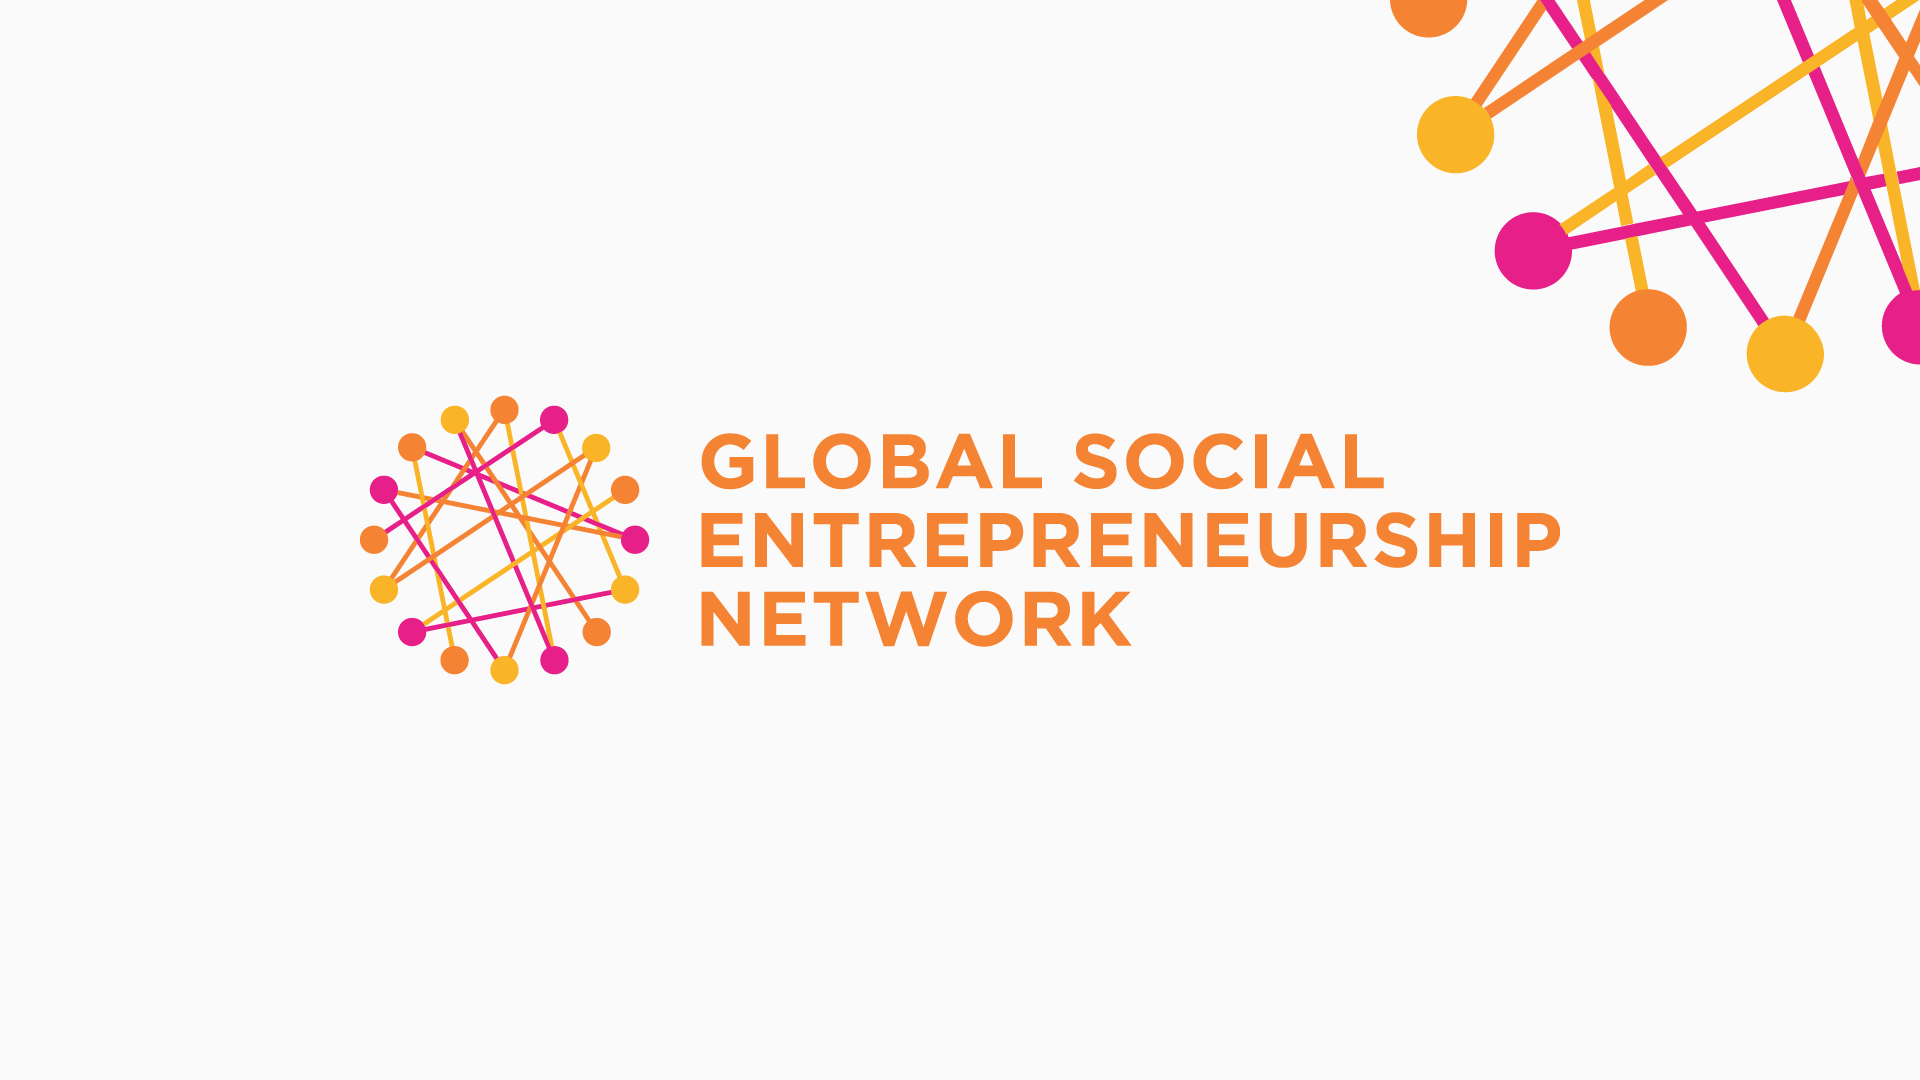 Social entrepreneurship network